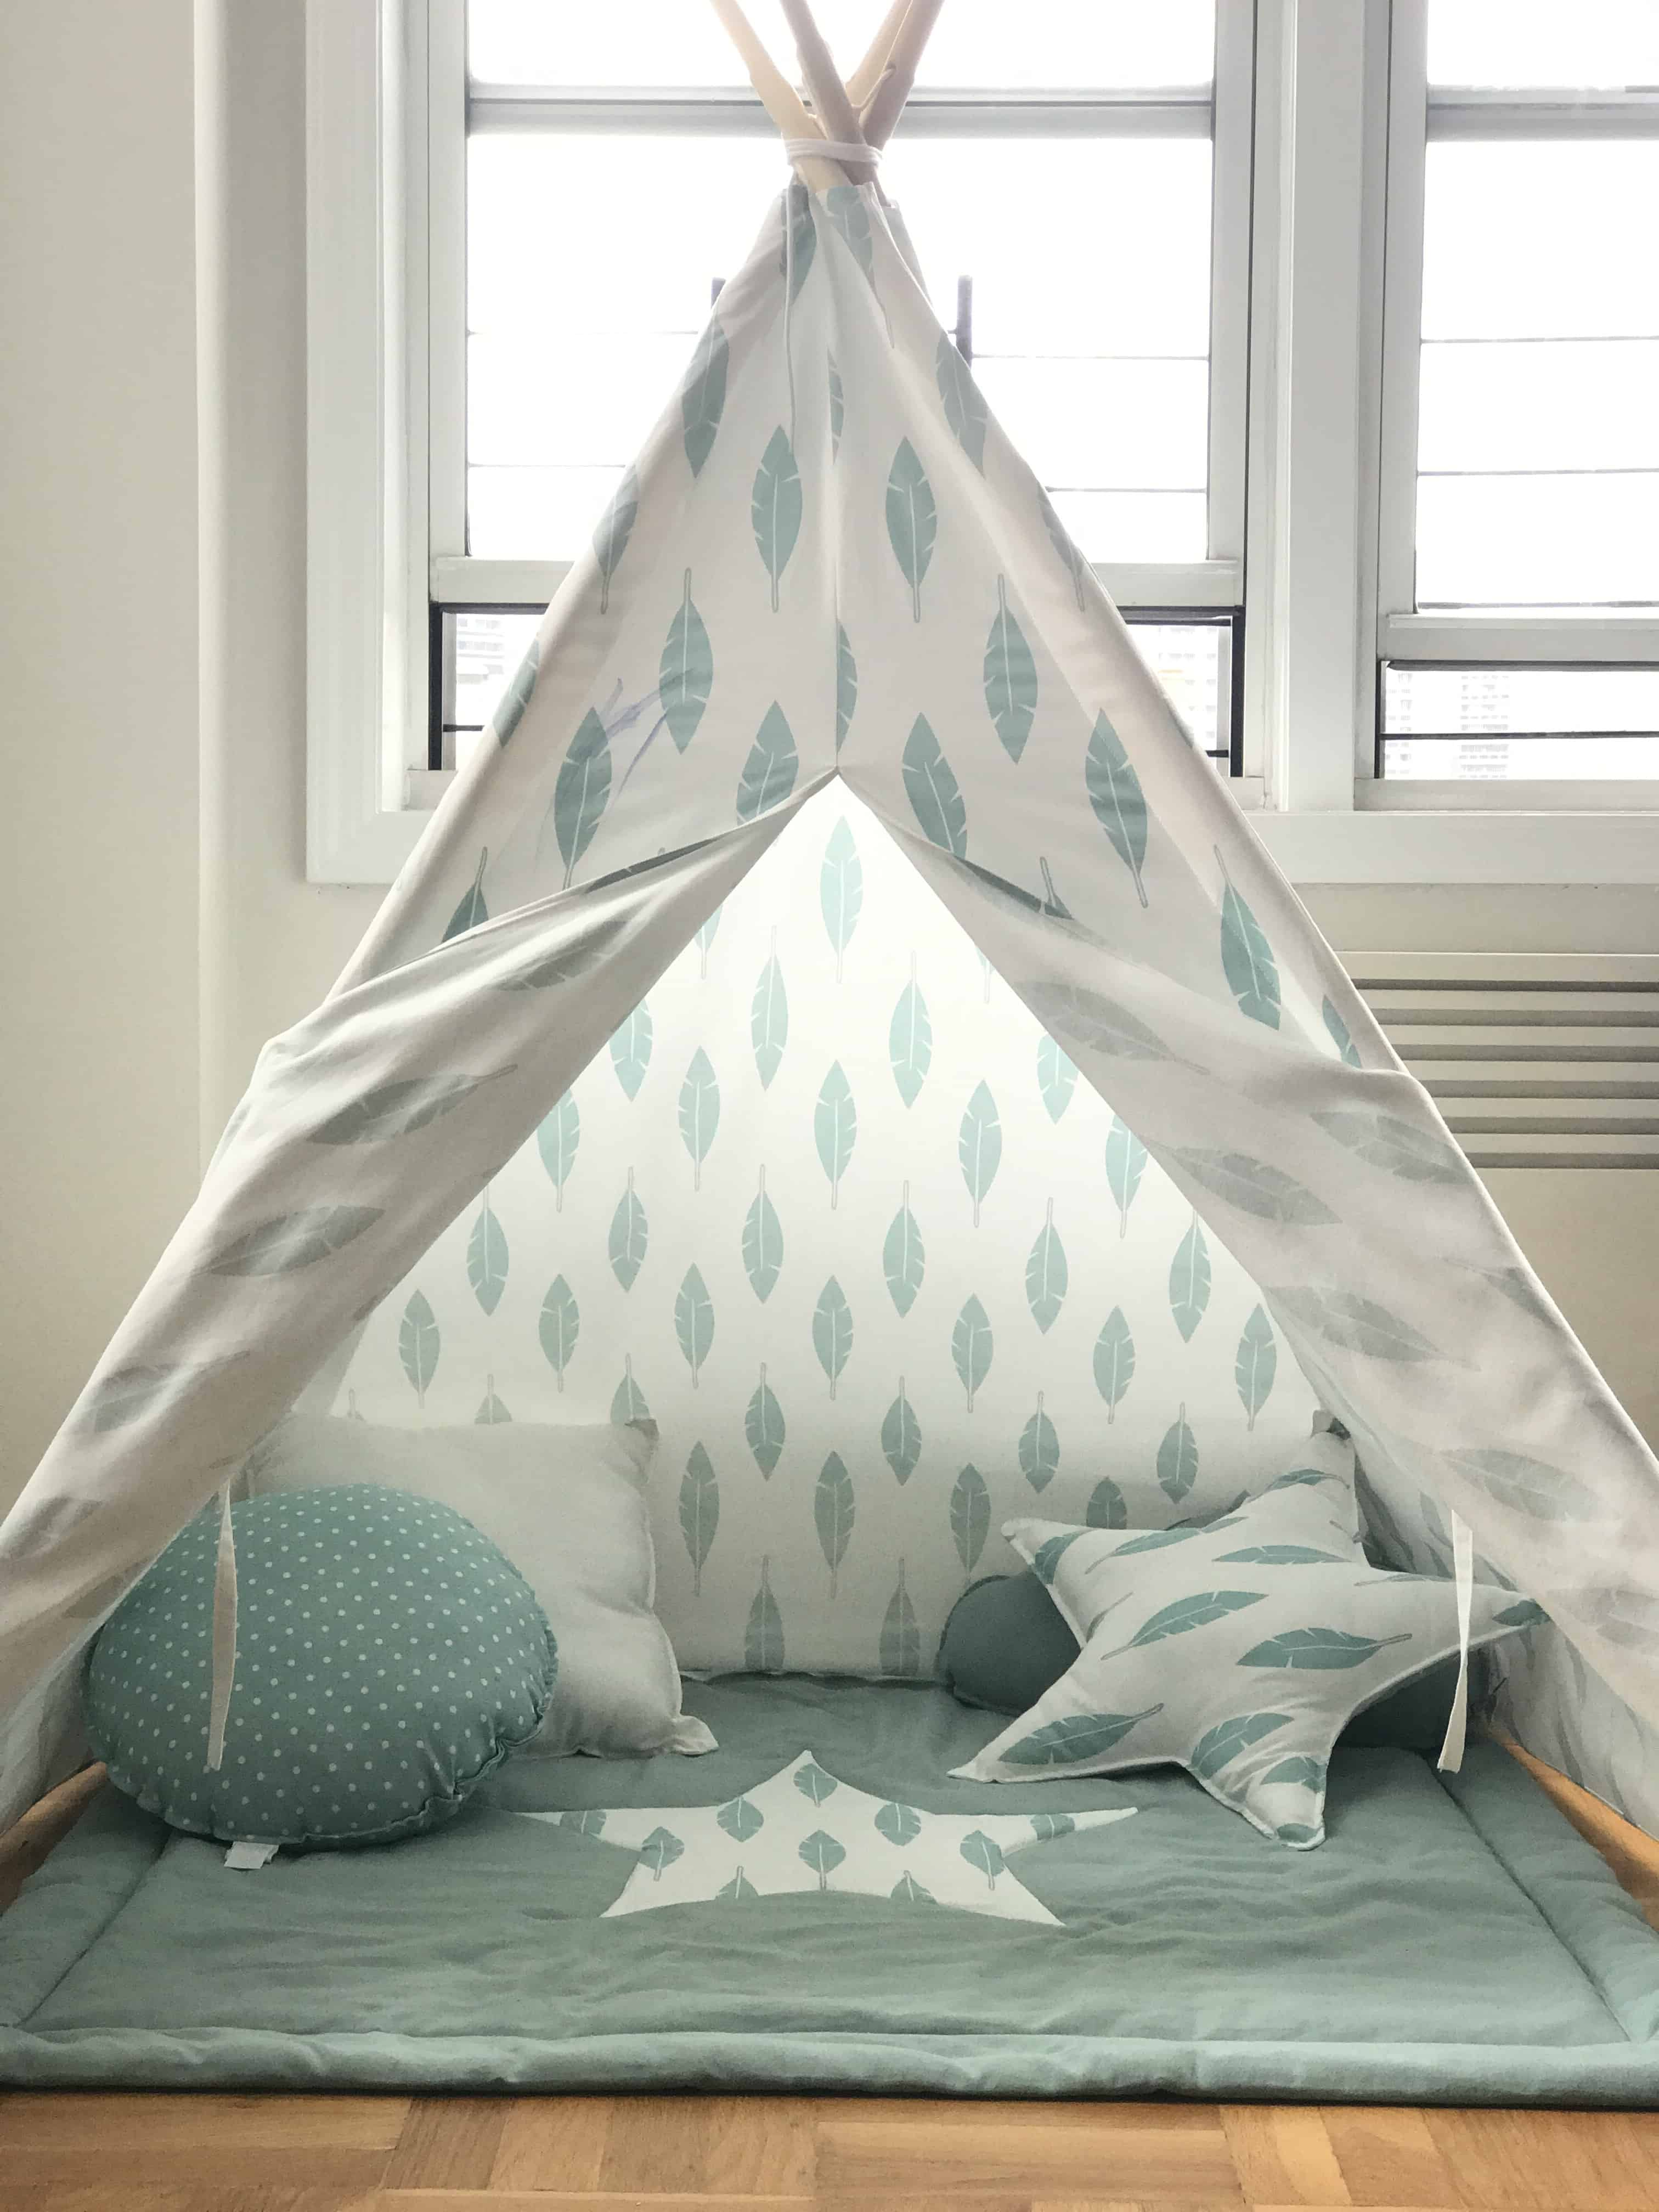 Design Kids Teepee best teepee tent for kids joy review mommy to max eagle eyes might see the marker stain on good thing its machine washable